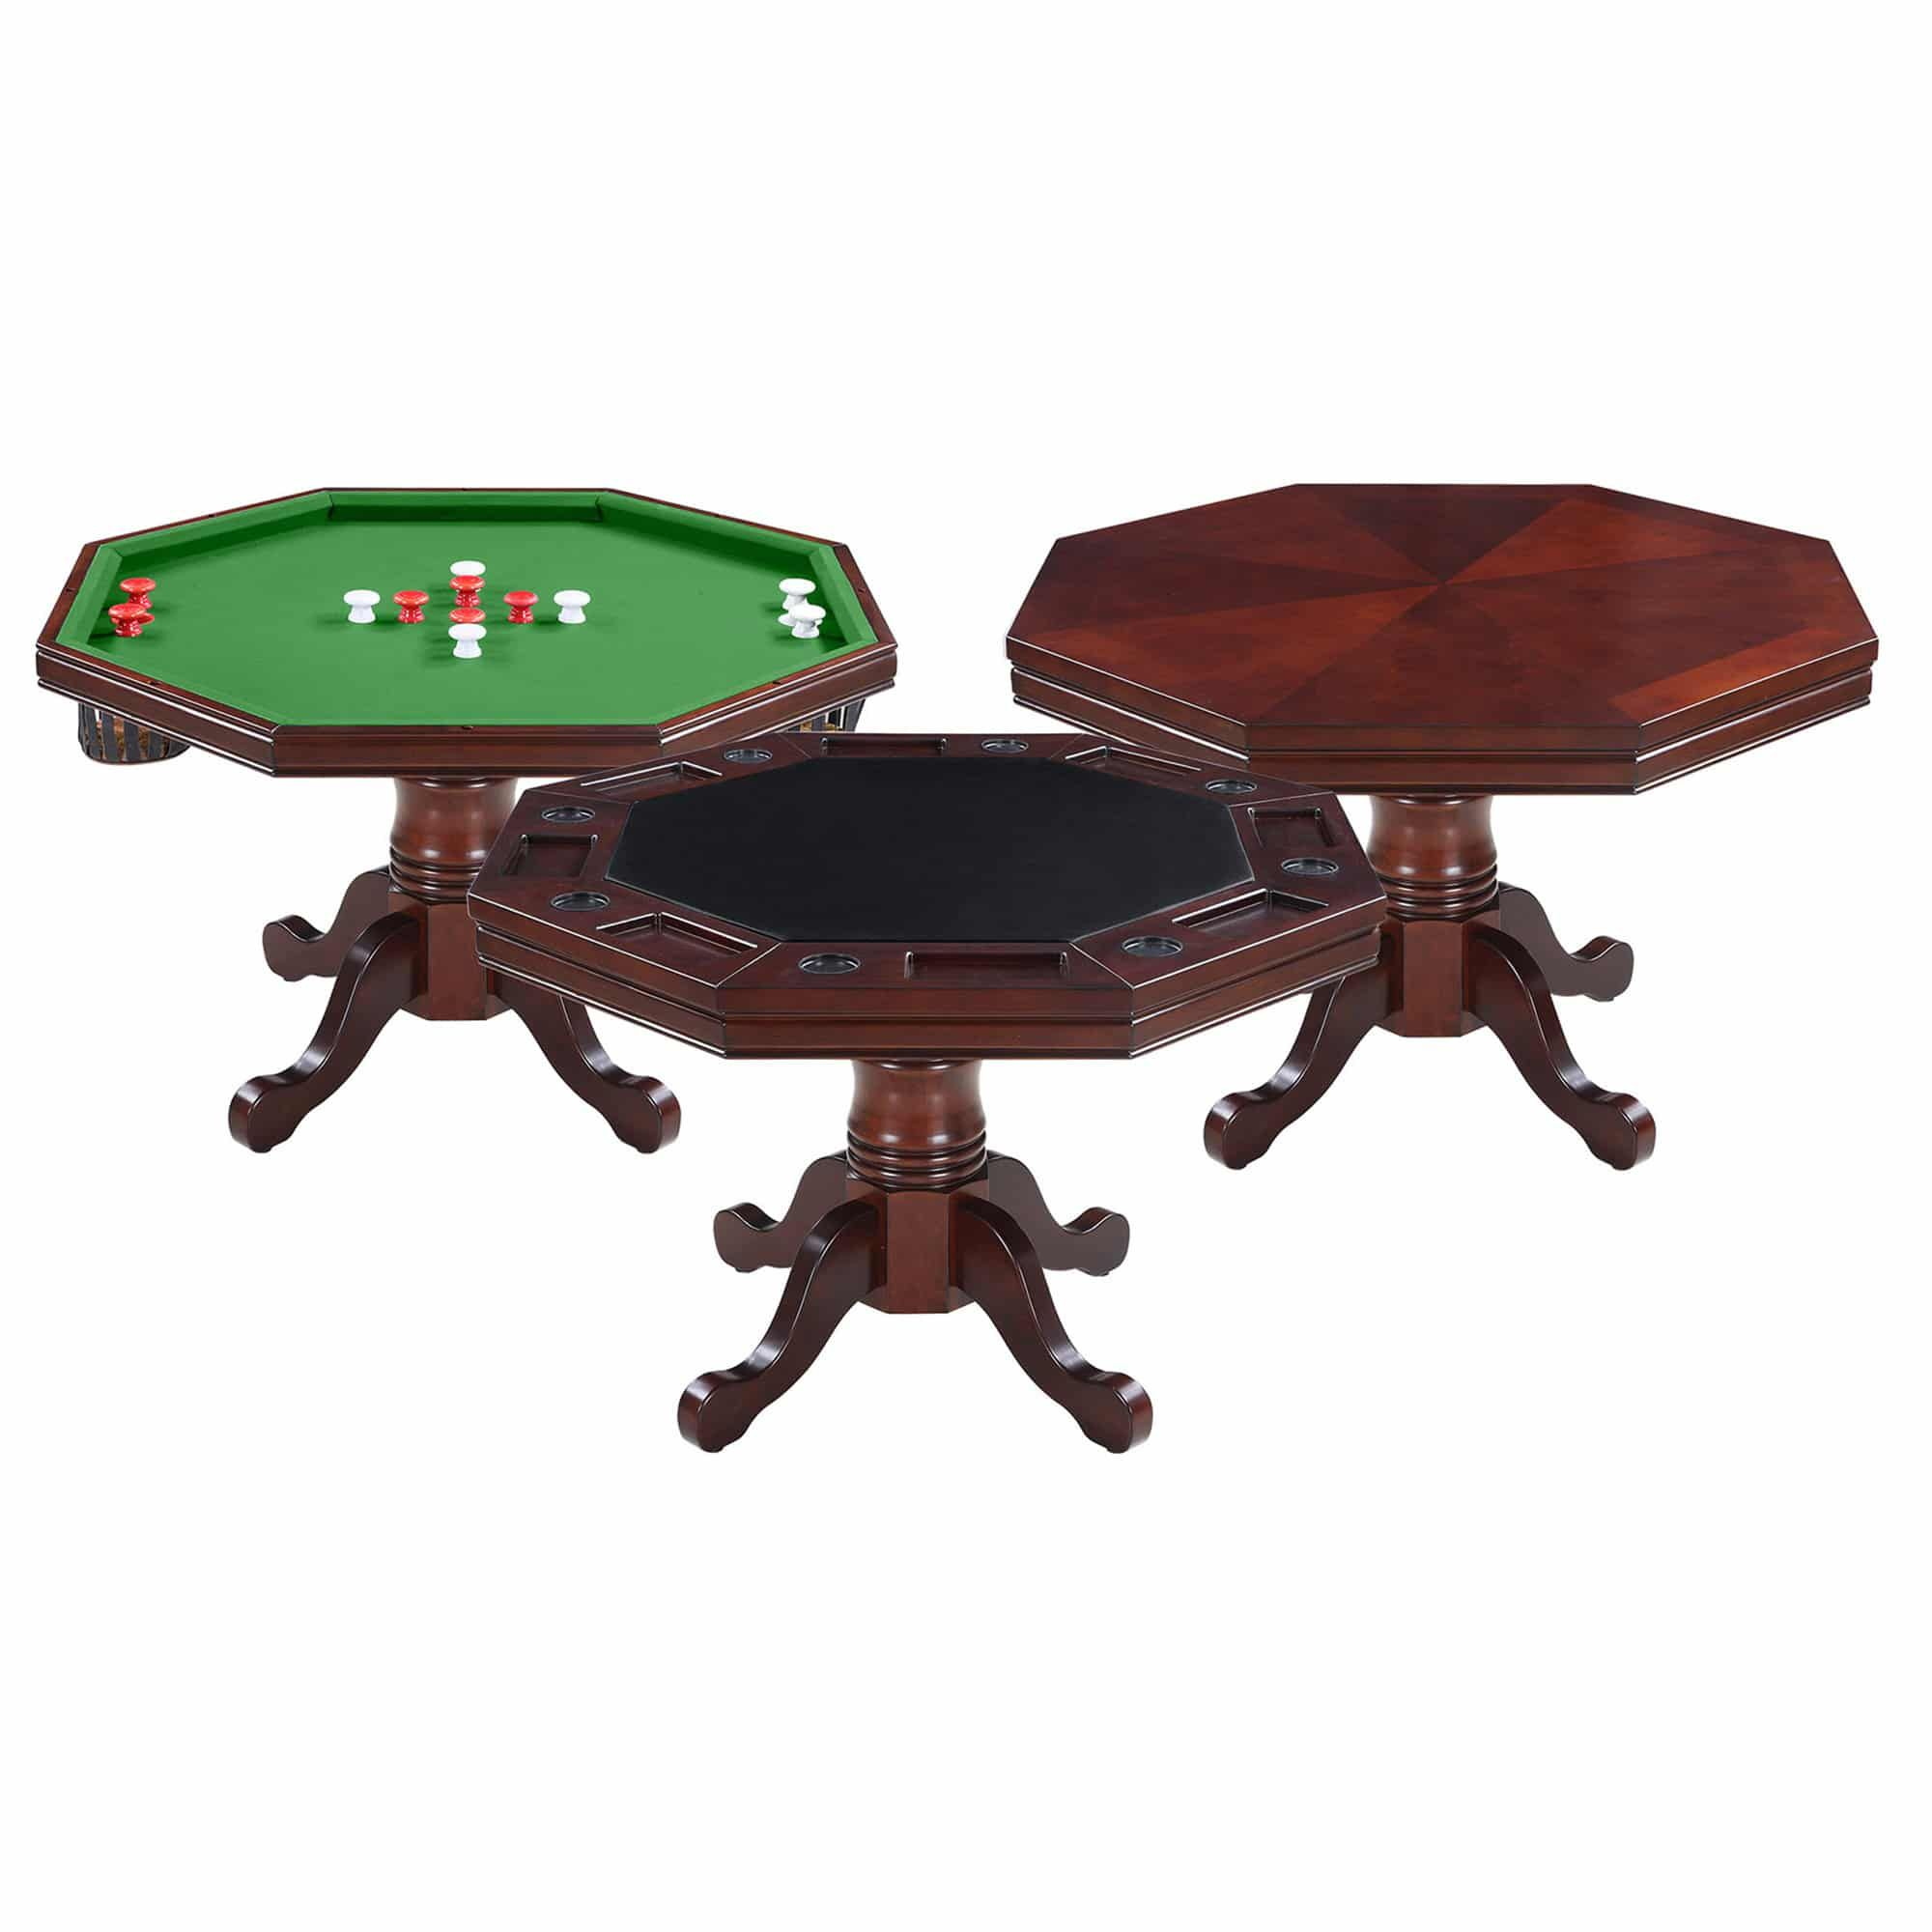 The Kingston Walnut In Poker Table From Pool Warehouse Comes - Online pool table sales